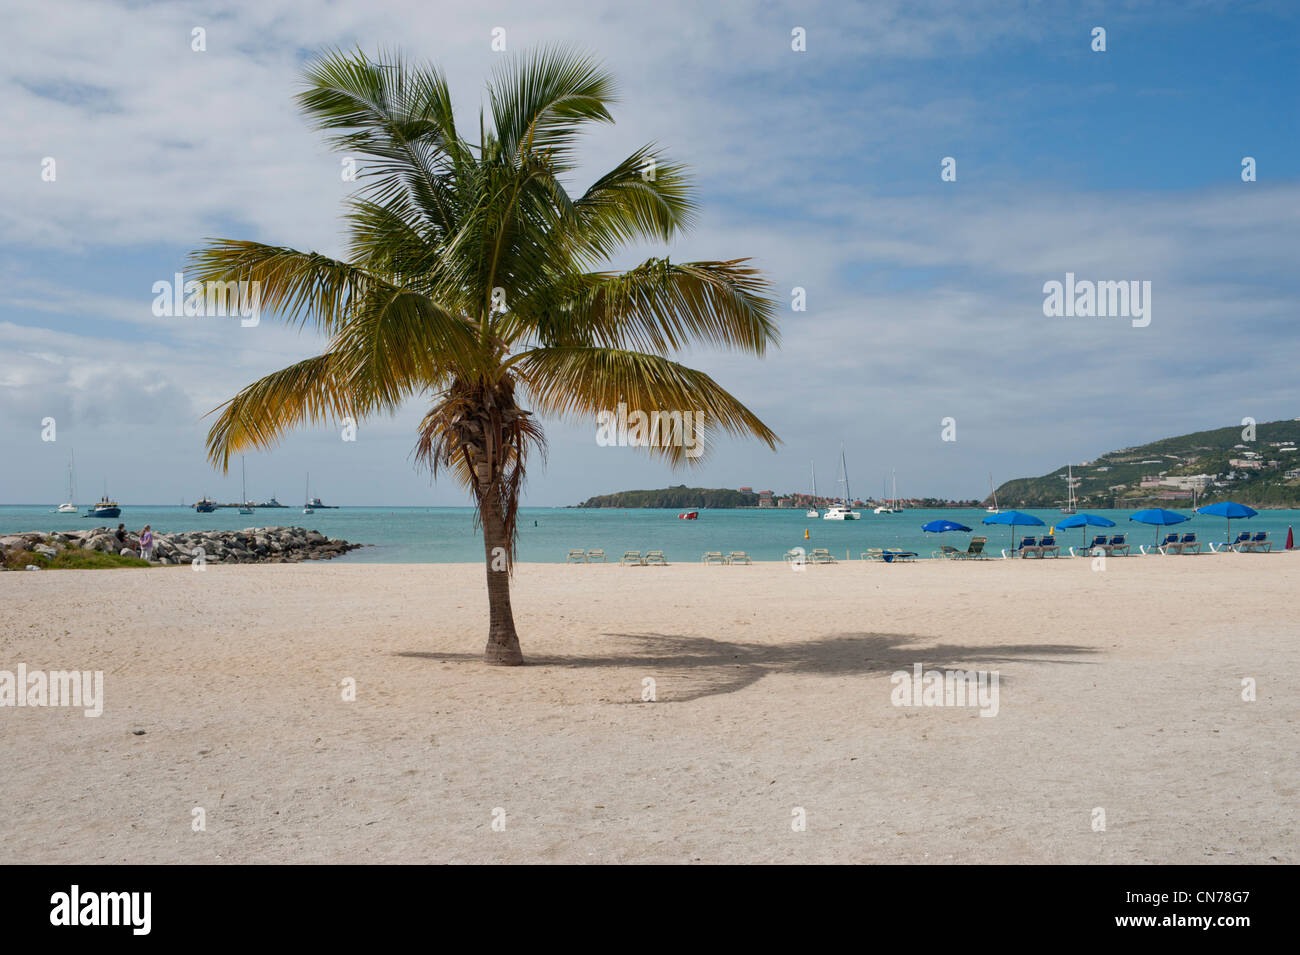 sint maarten singles Get the top 10 saint martin/sint maarten nightlife read the 10best saint martin/sint maarten nightlife reviews and view users' nightlife ratings.